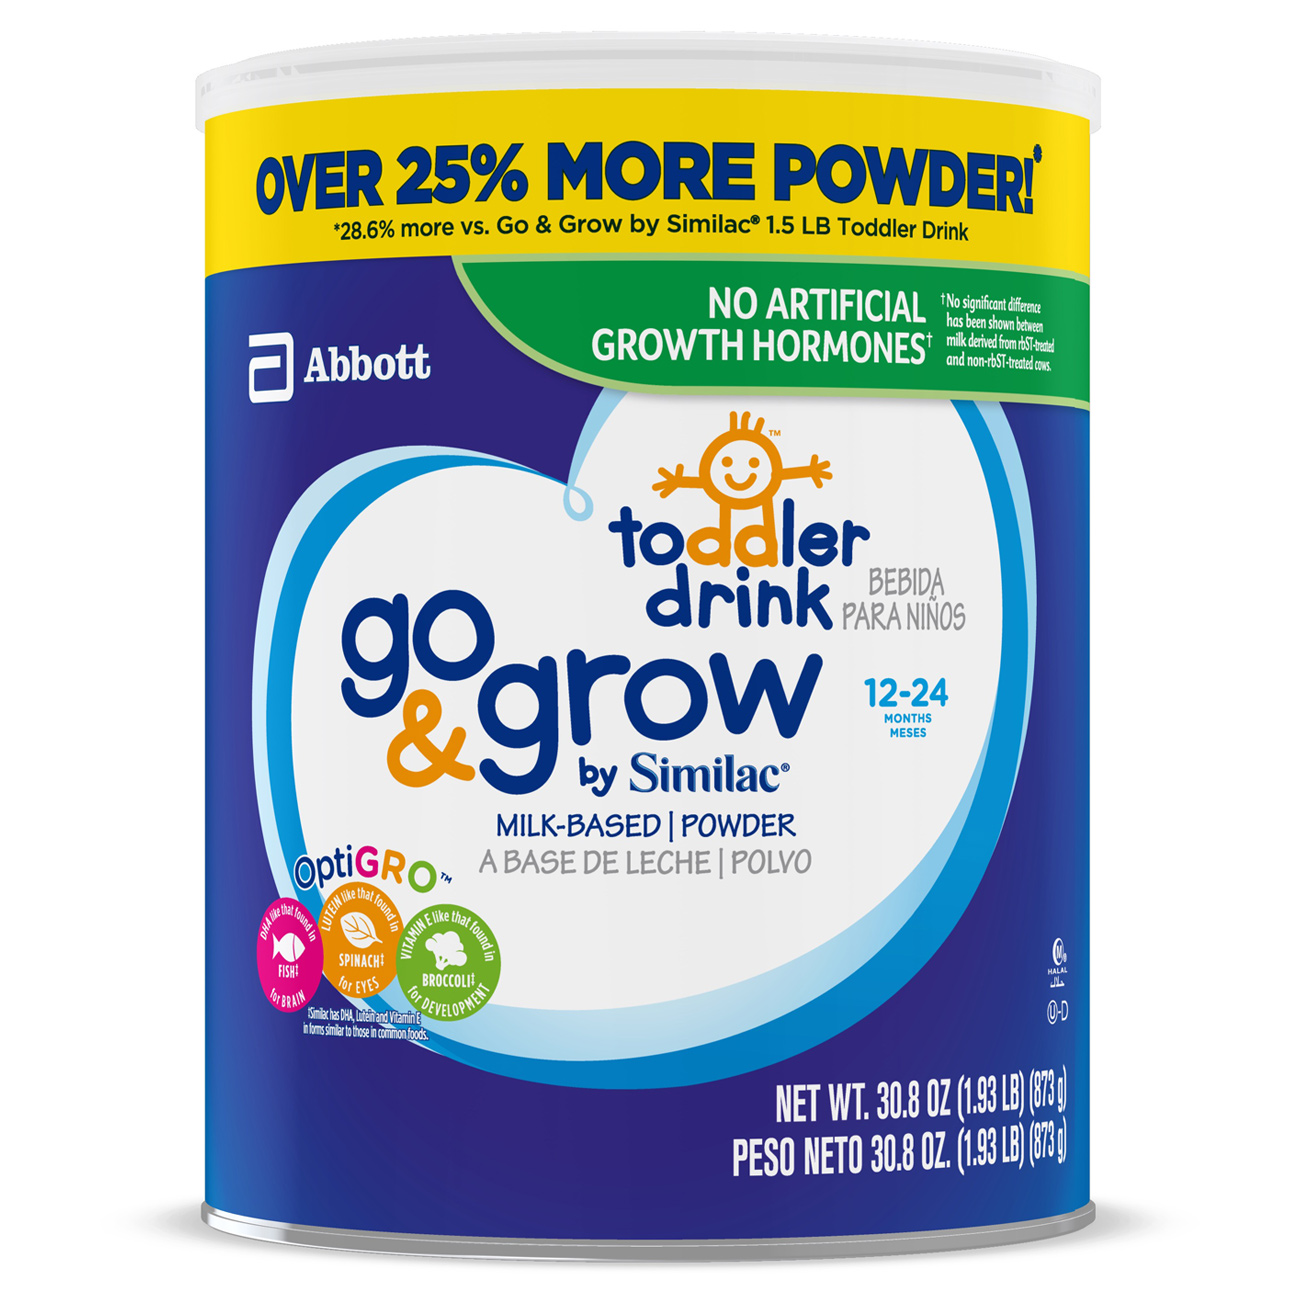 Go & Grow by Similac Toddler Drink 30.8 oz Can